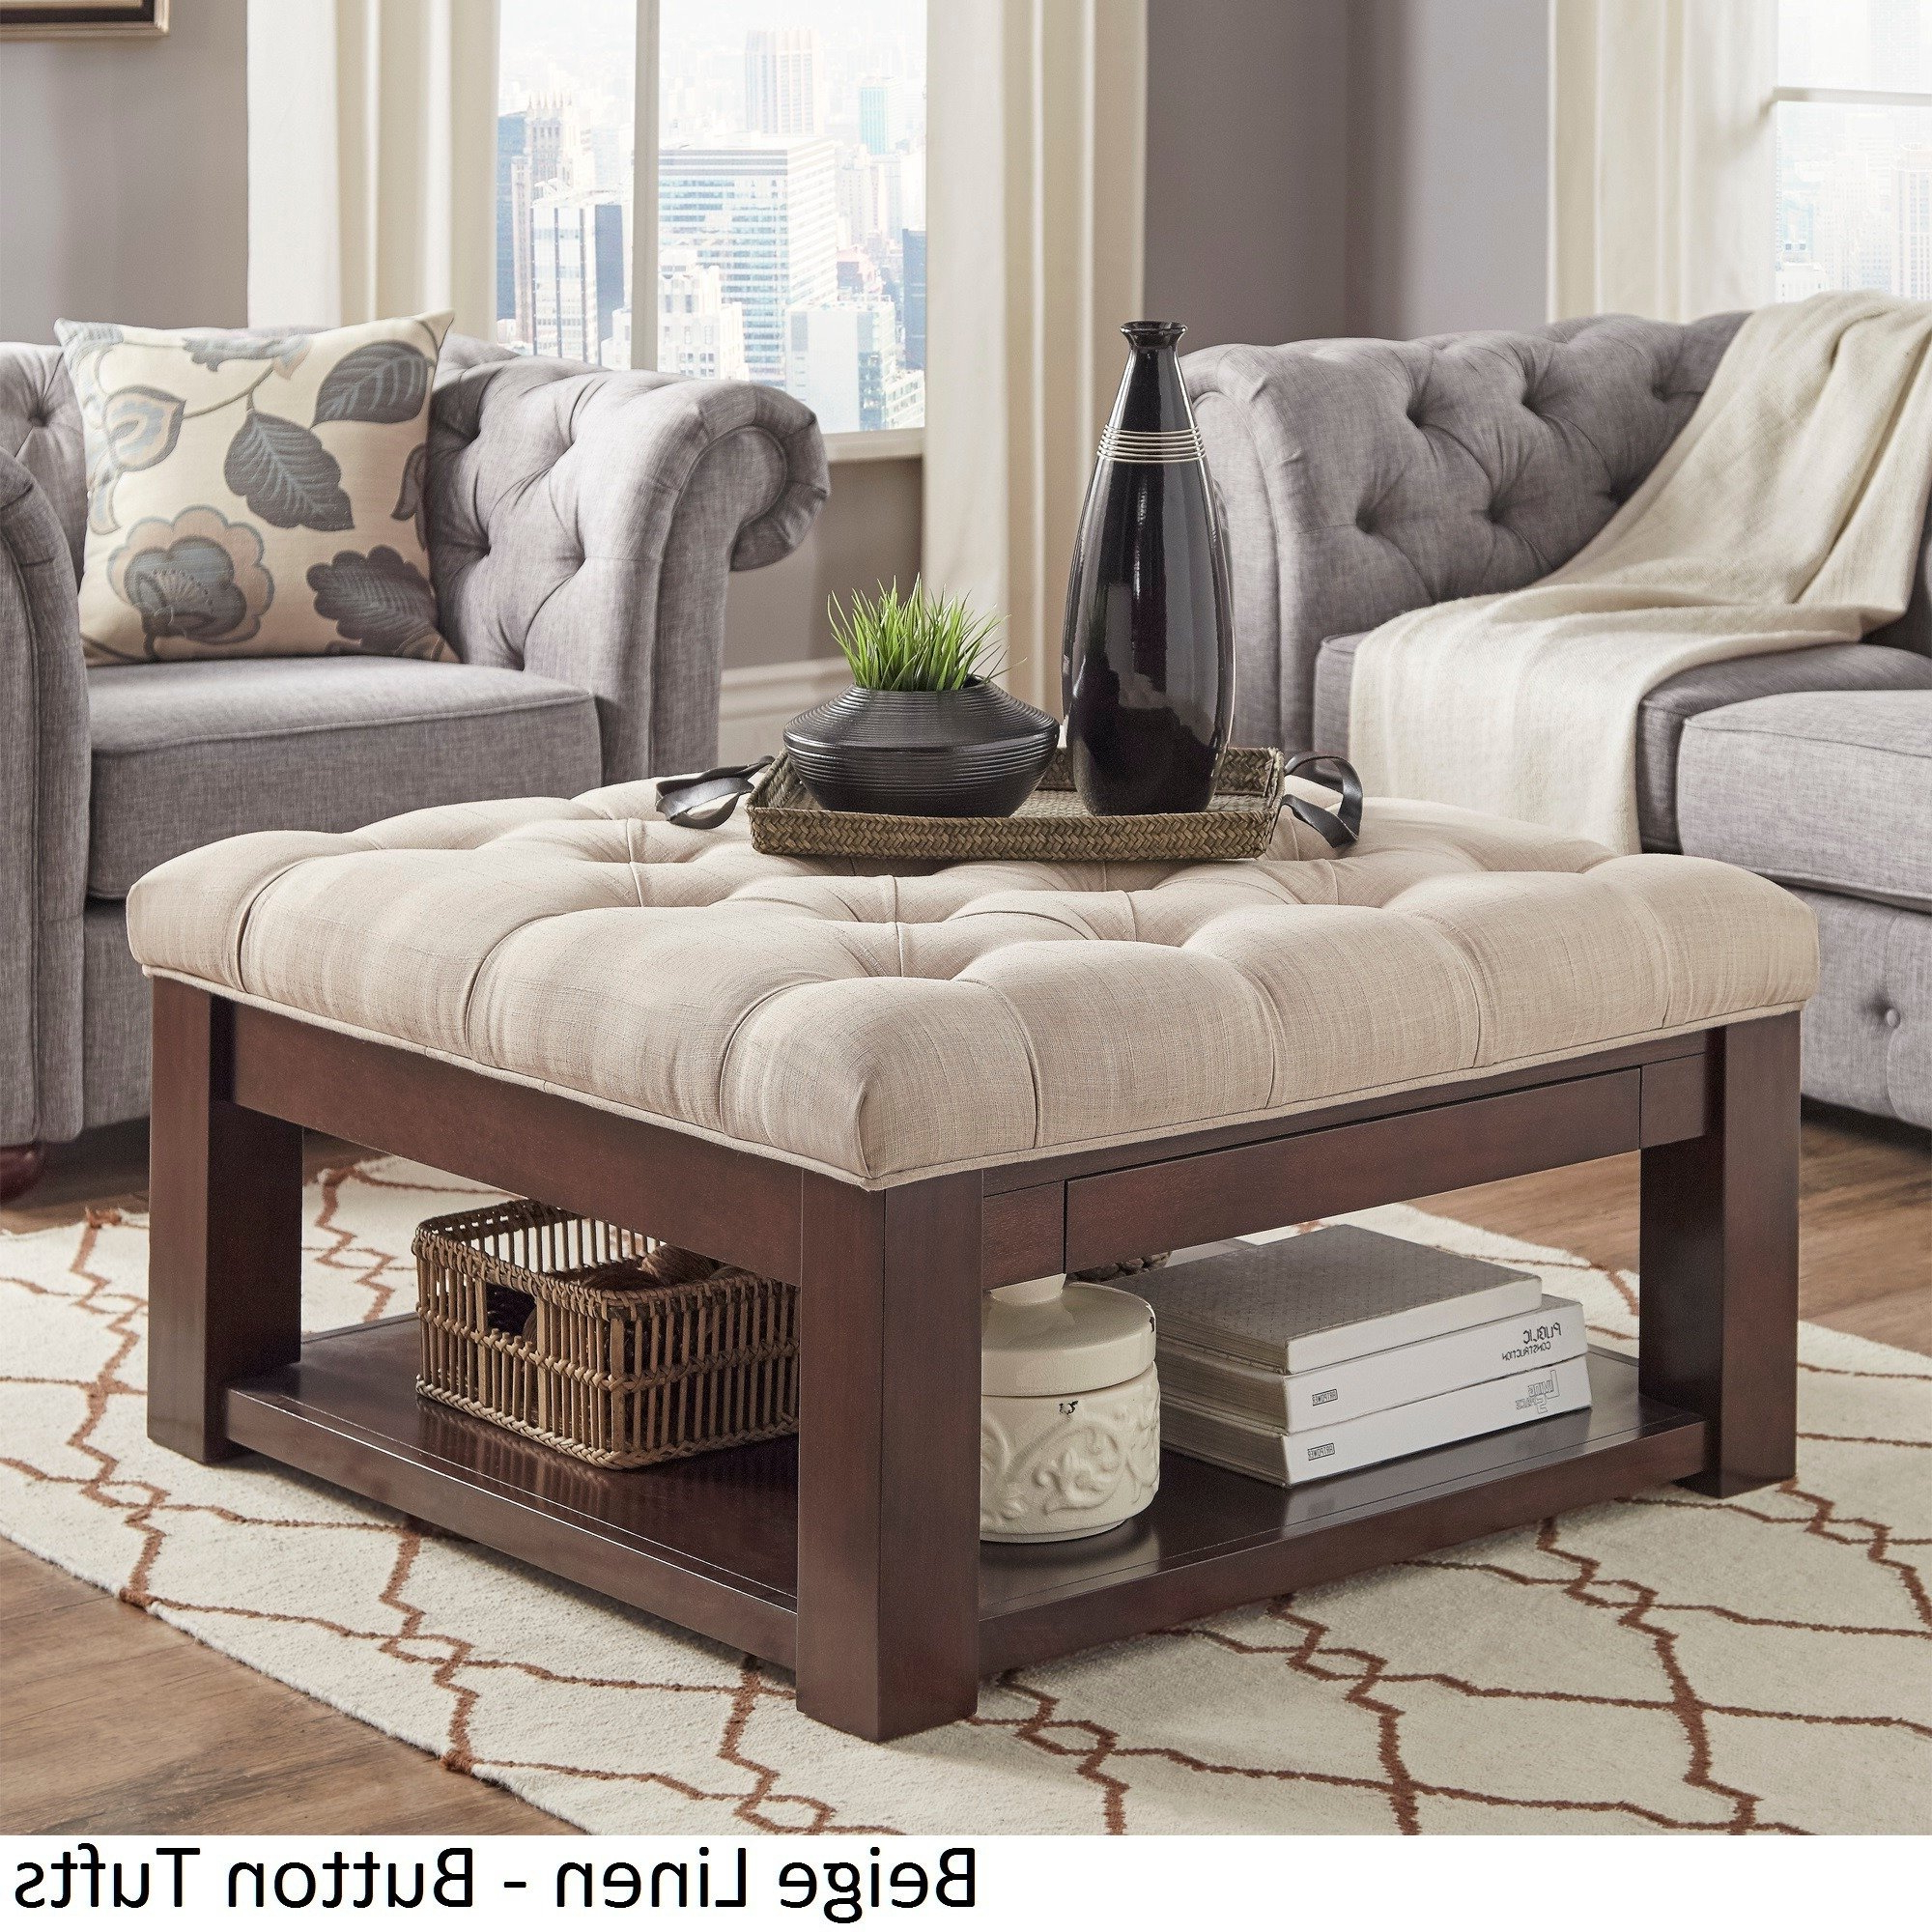 Ottoman Coffee Table – Andrewab.co (View 19 of 20)